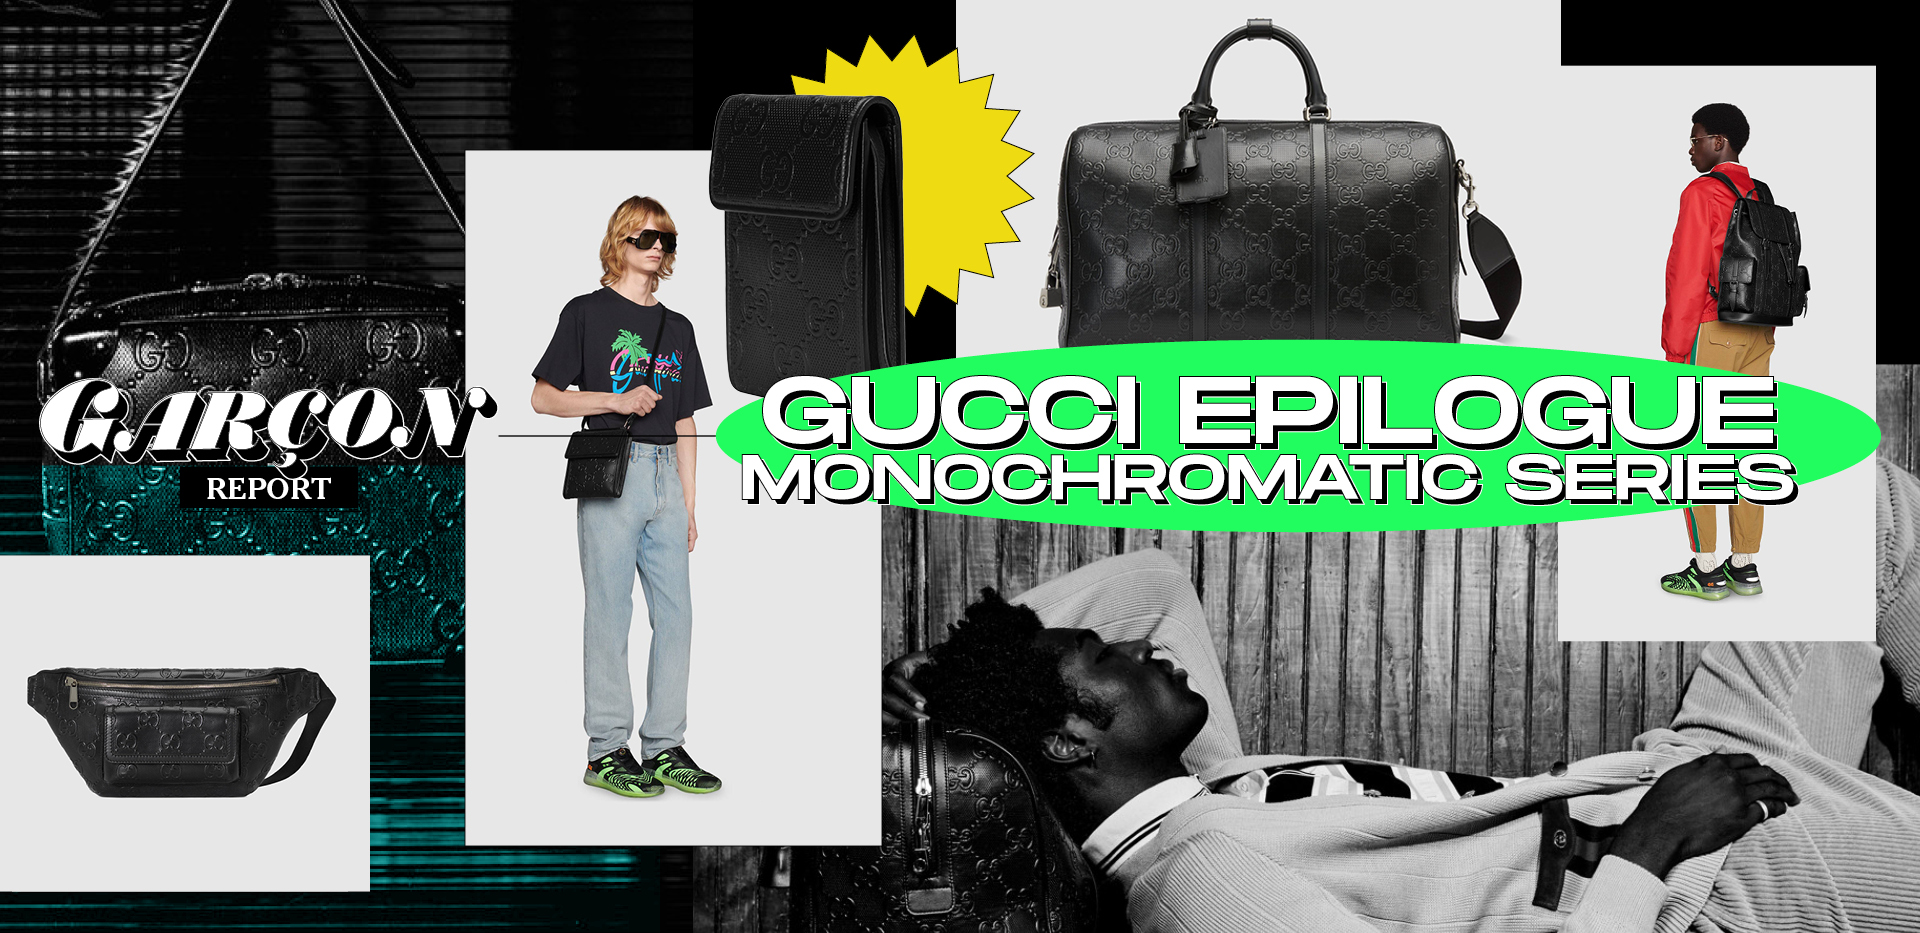 Gucci Epilogue – Monochromatic Series